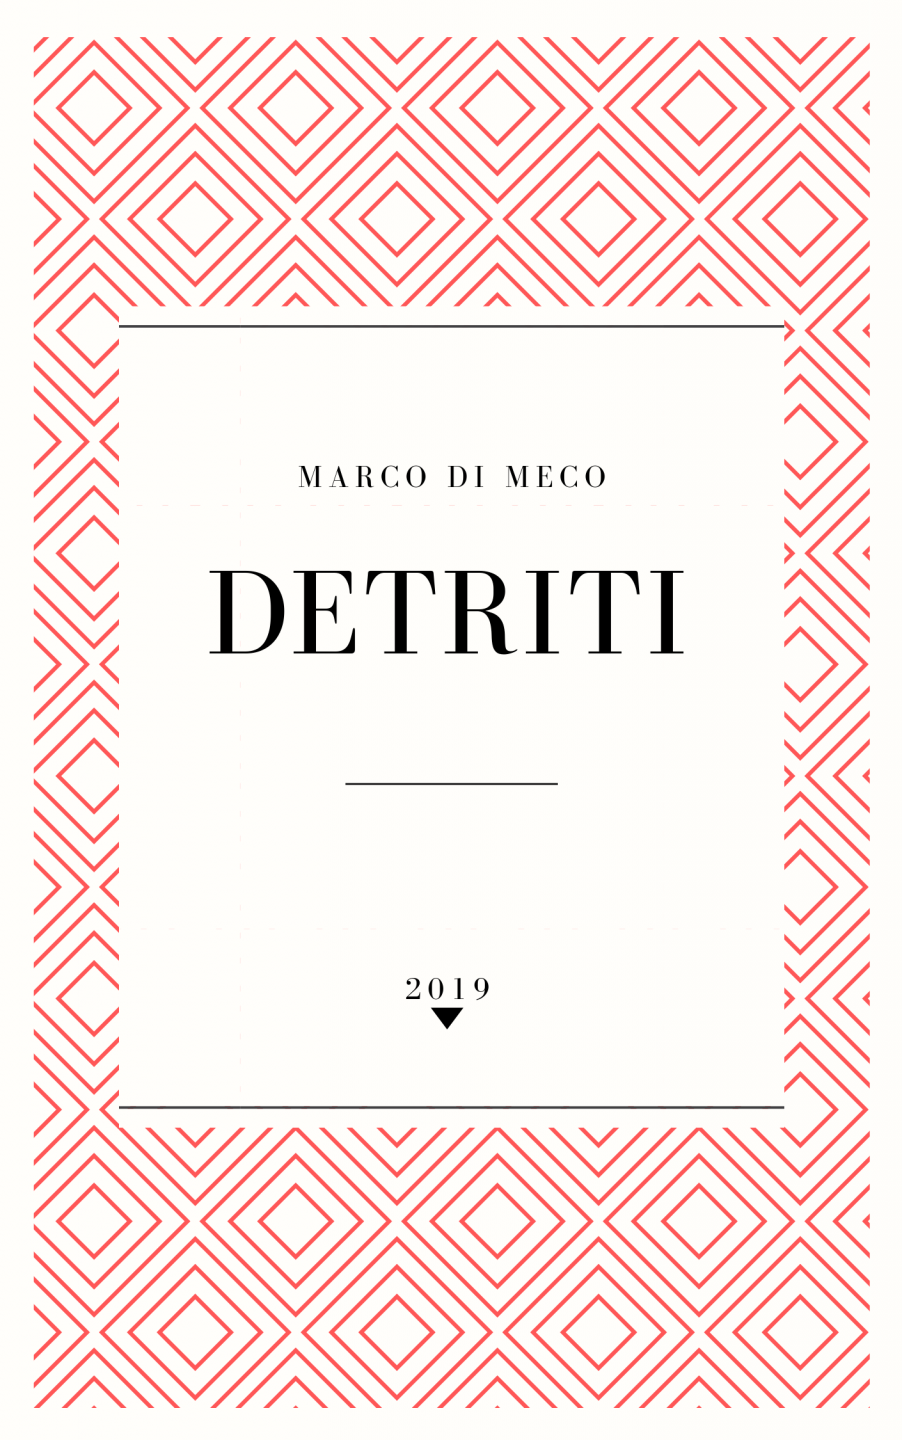 Cover DETRITI book by Marco Di Meco.